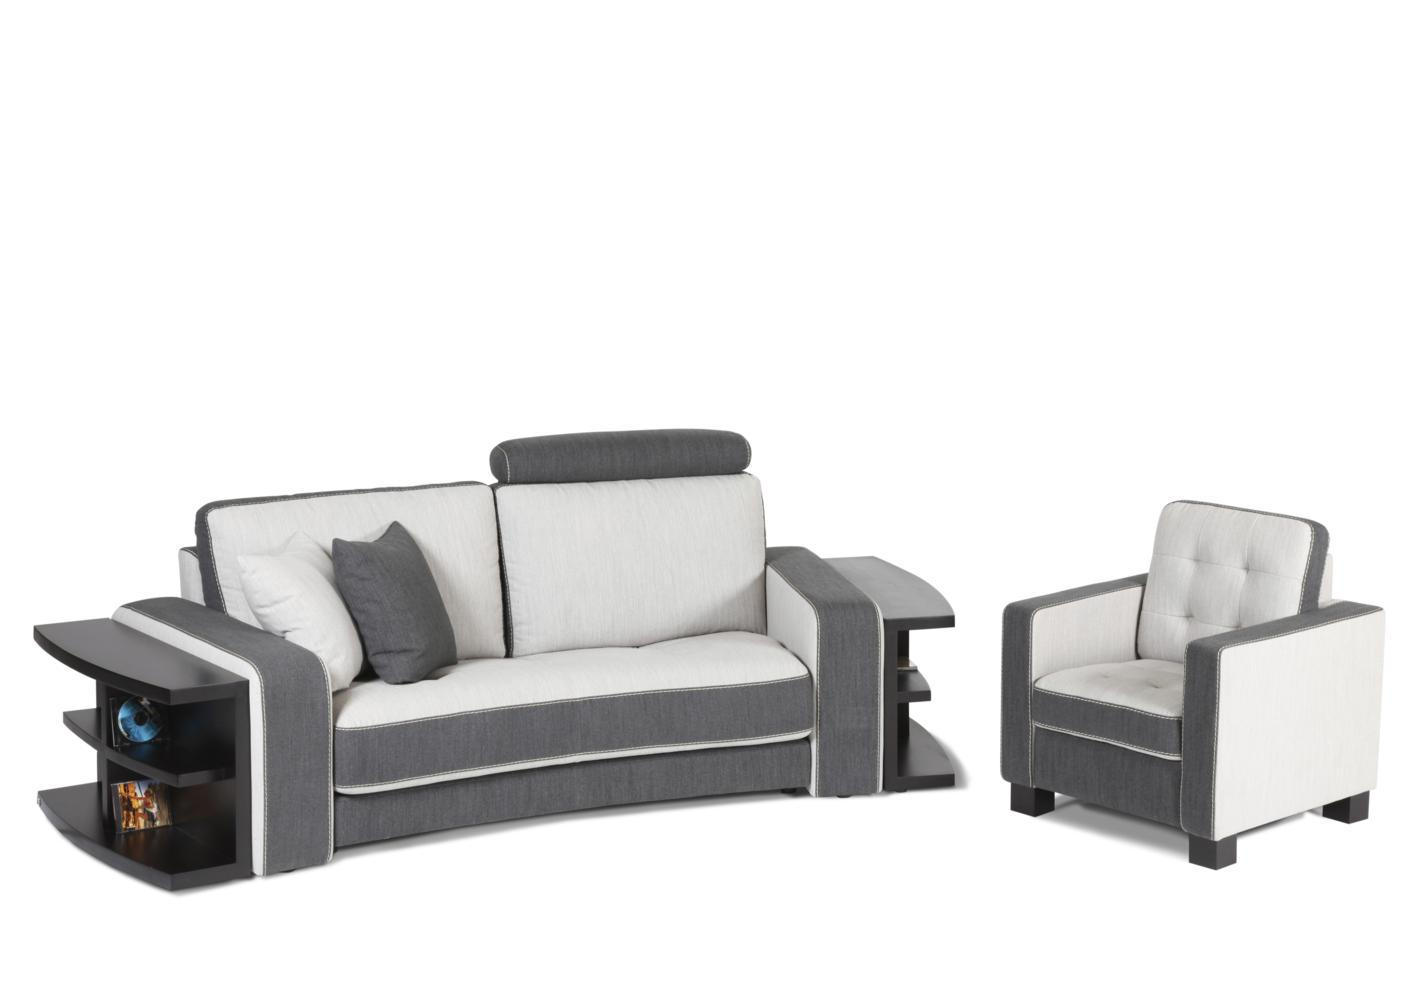 acheter votre canap contemporain bicolore gris et blanc avec t ti res chez simeuble. Black Bedroom Furniture Sets. Home Design Ideas